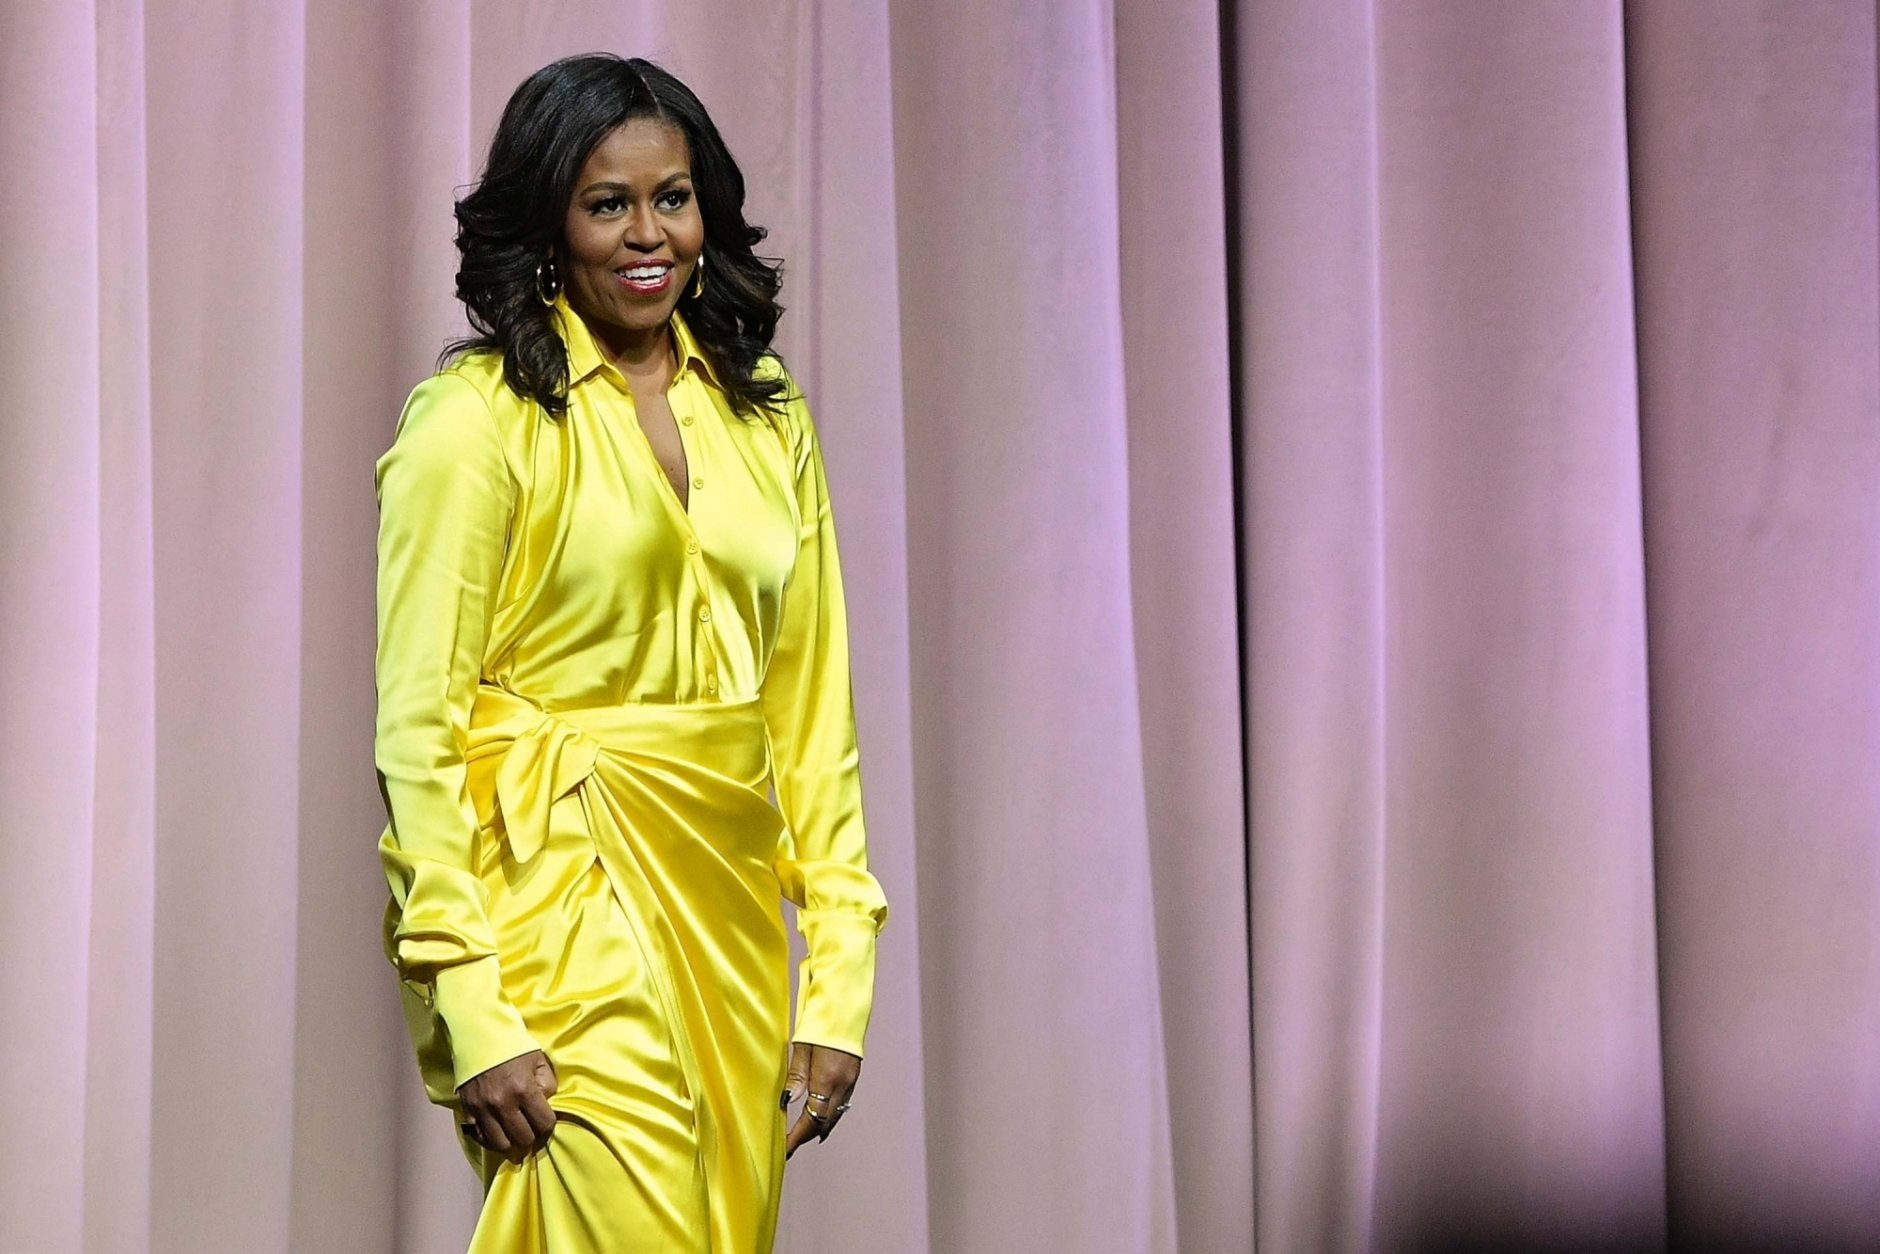 """Former first lady Michelle Obama discusses her book """"Becoming"""" at Barclays Center on December 19, 2018, in New York. Penguin Random House announced on March 26, 2019, that her memoir has sold nearly 10 million copies."""